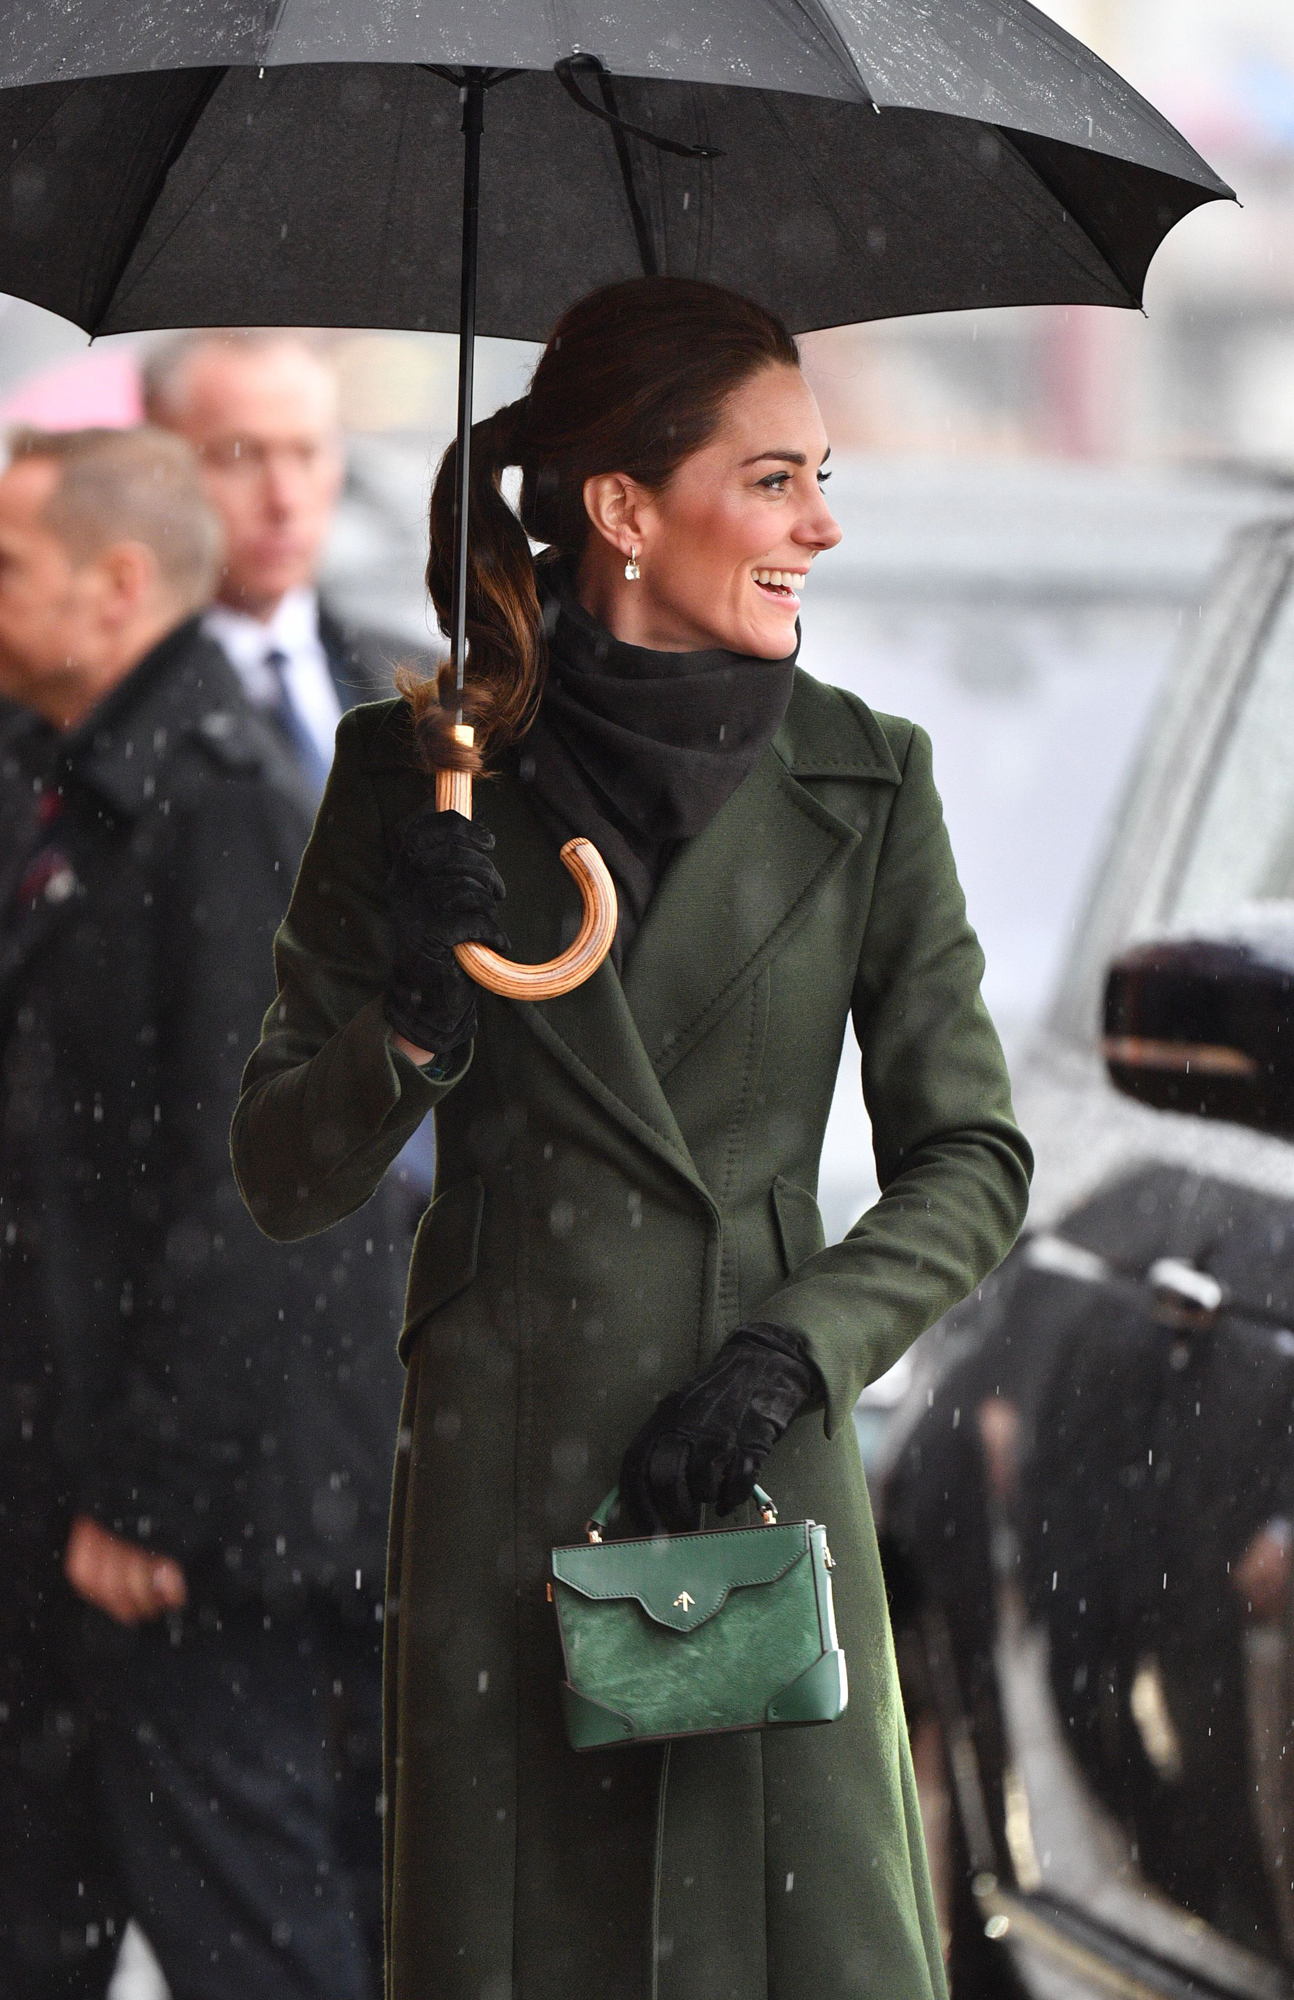 Prince William and Catherine Duchess of Cambridge visit to Blackpool, UK - 06 Mar 2019